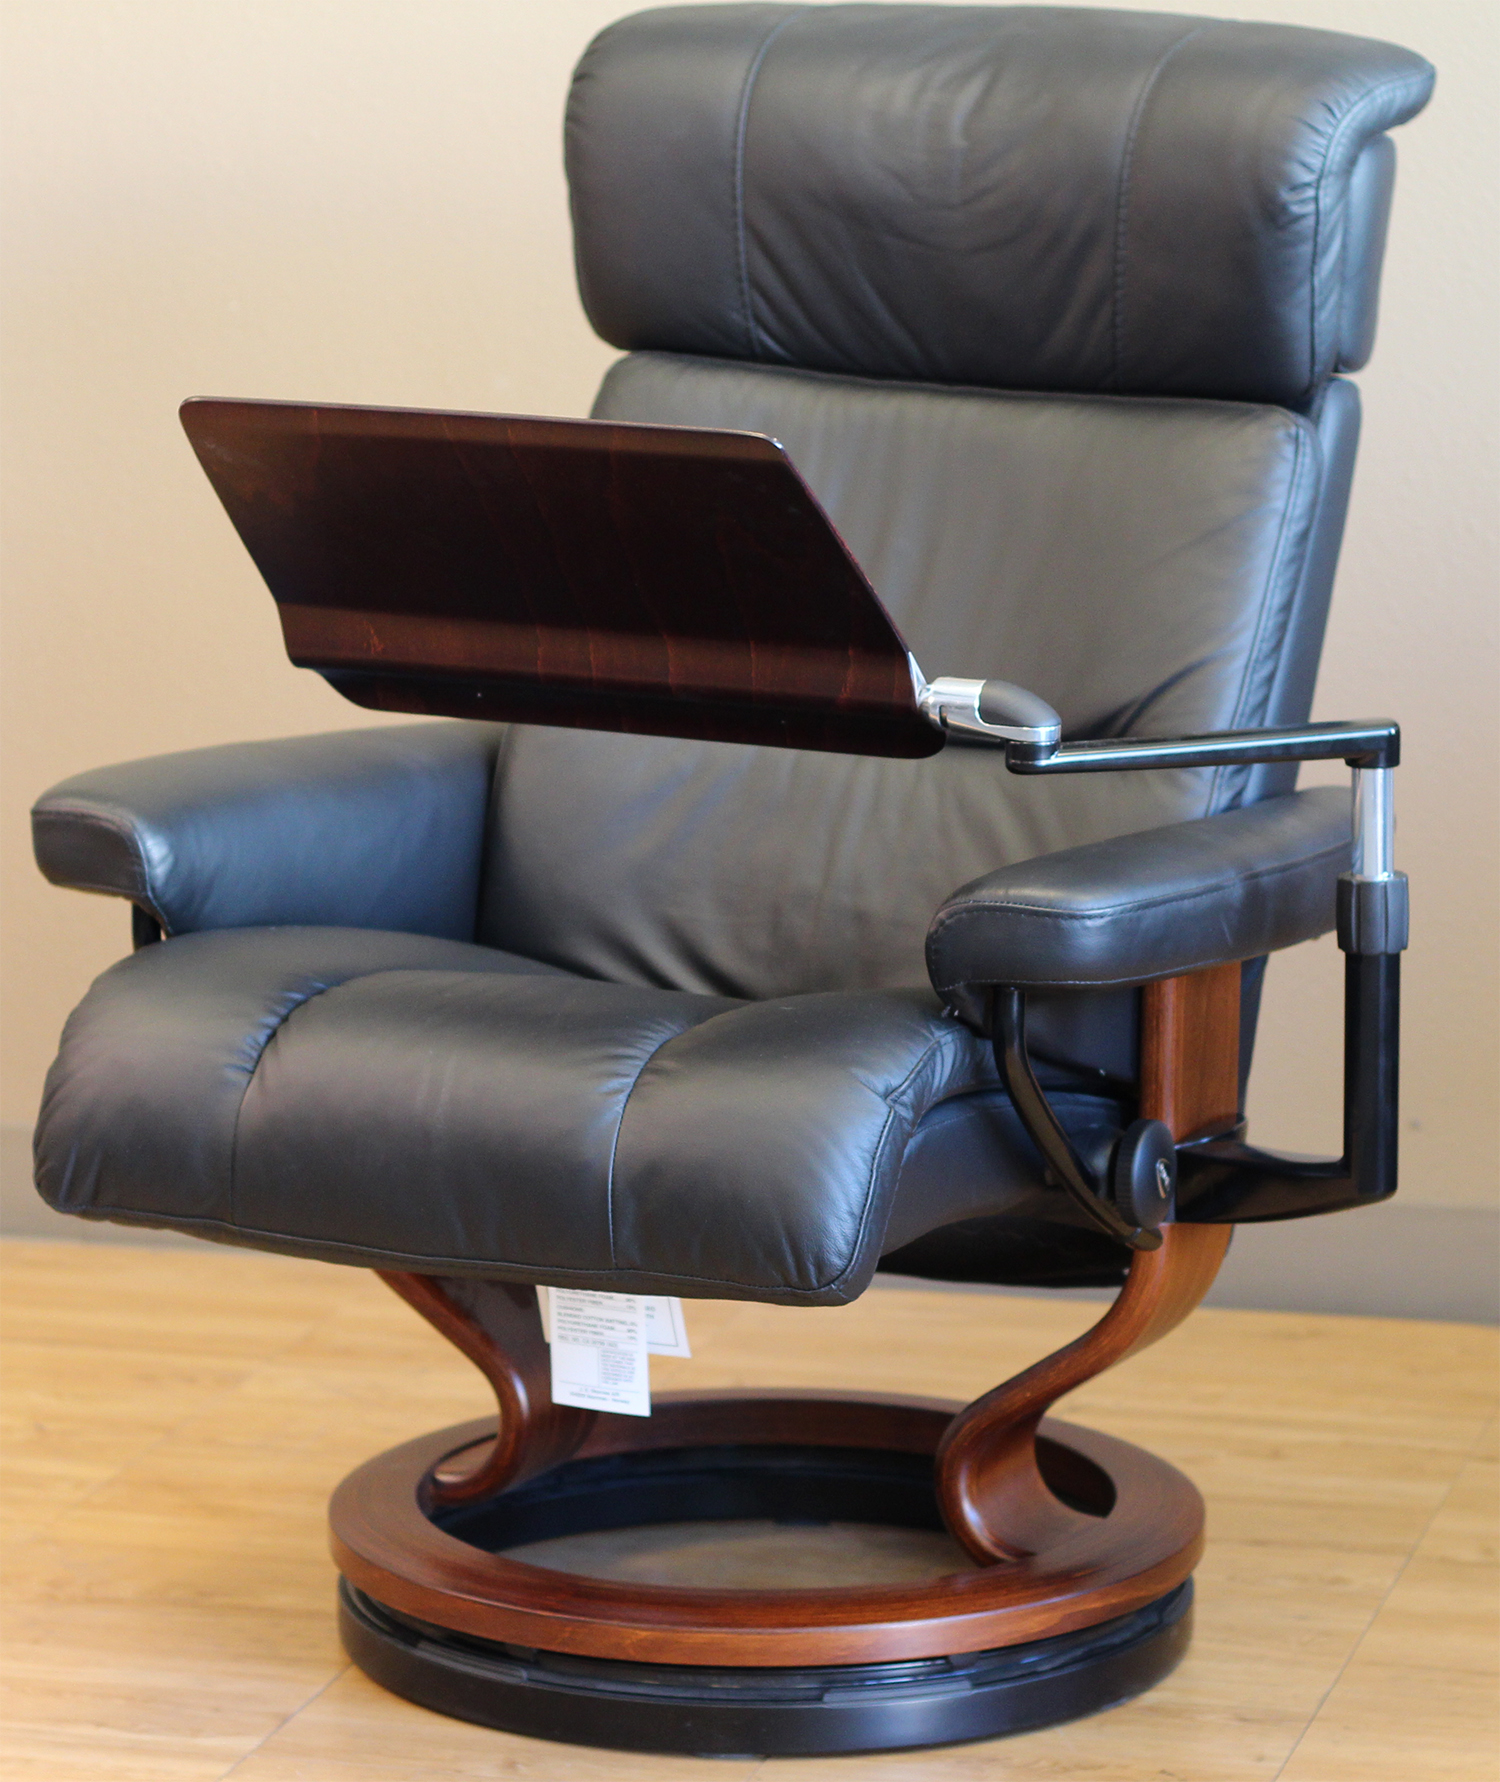 Stressless Personal Computer Table From Ekornes